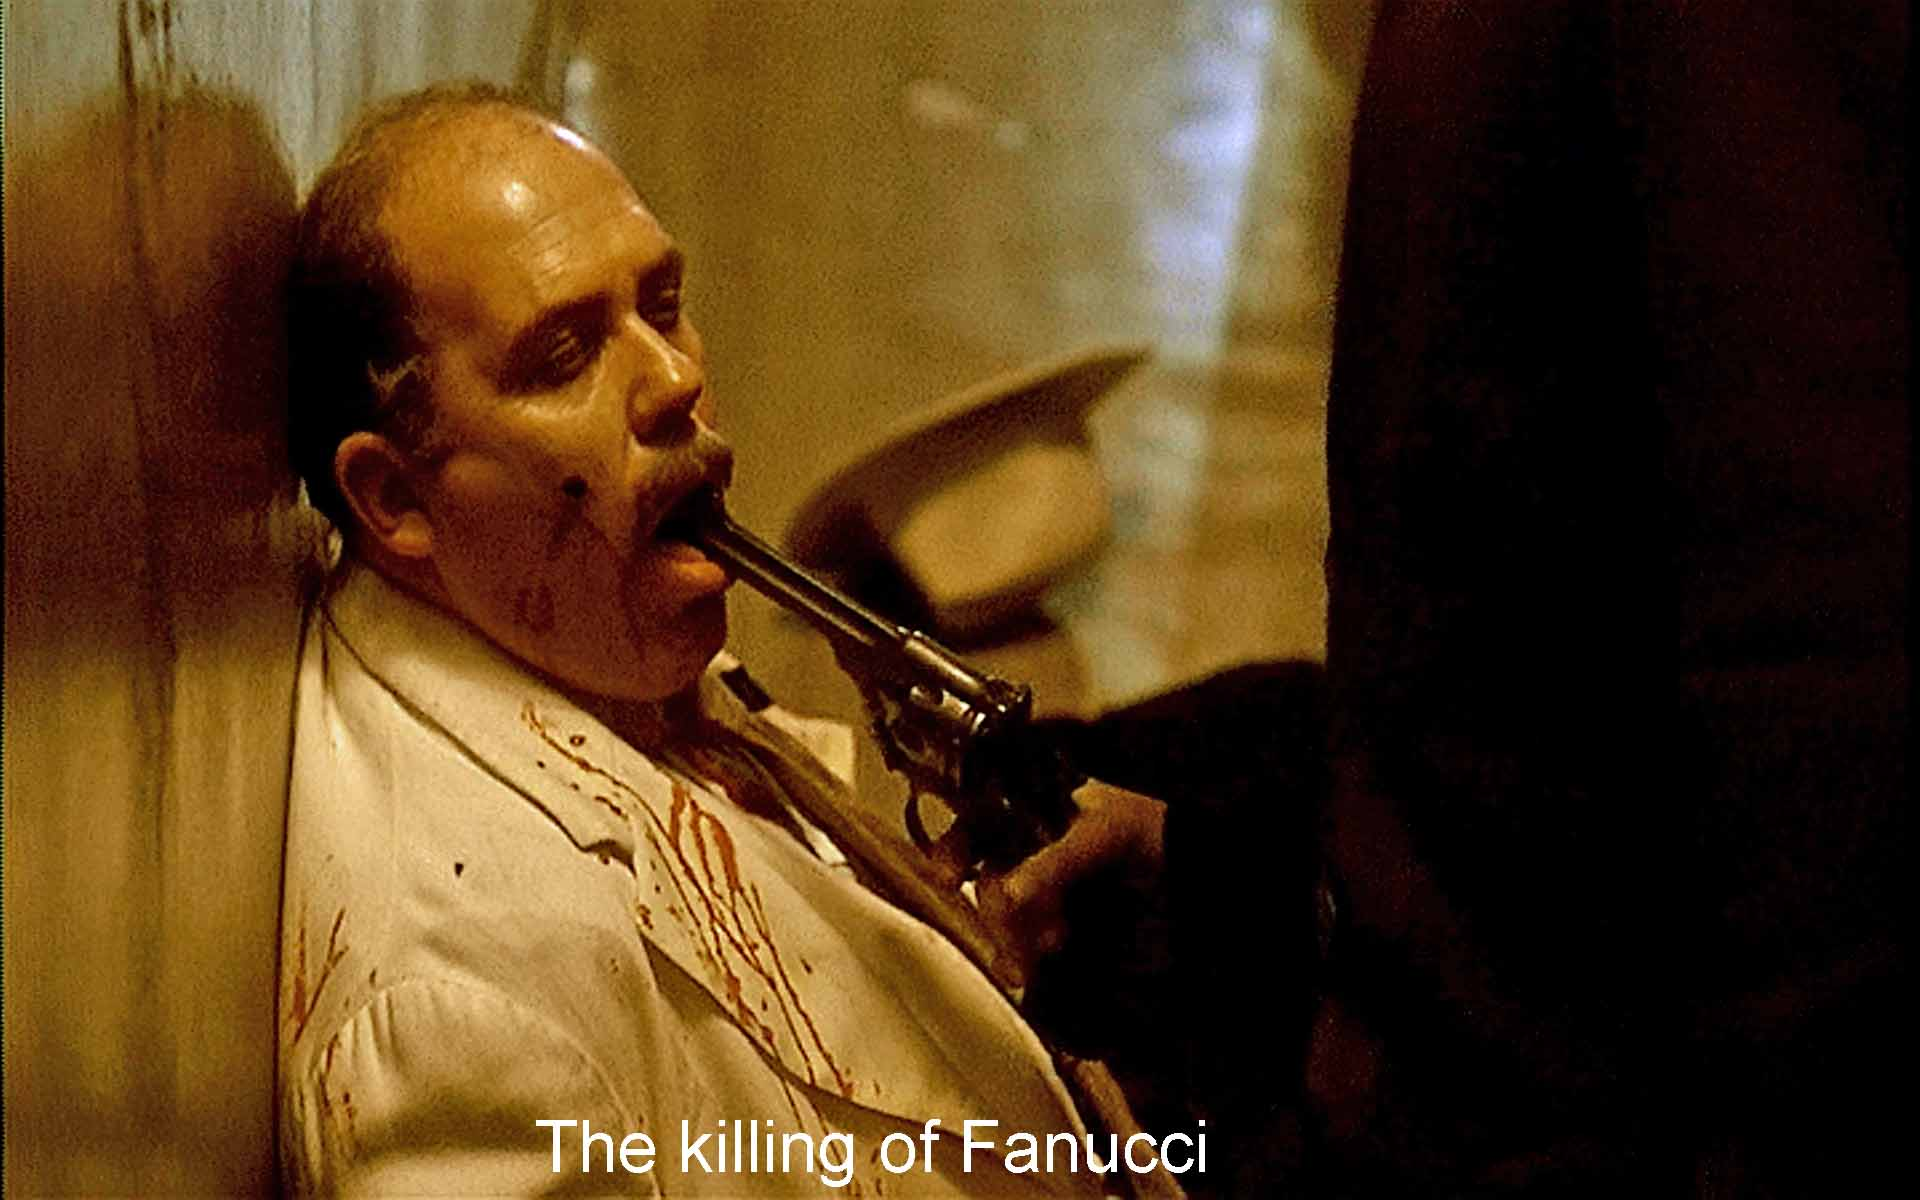 The killing of Fanucci